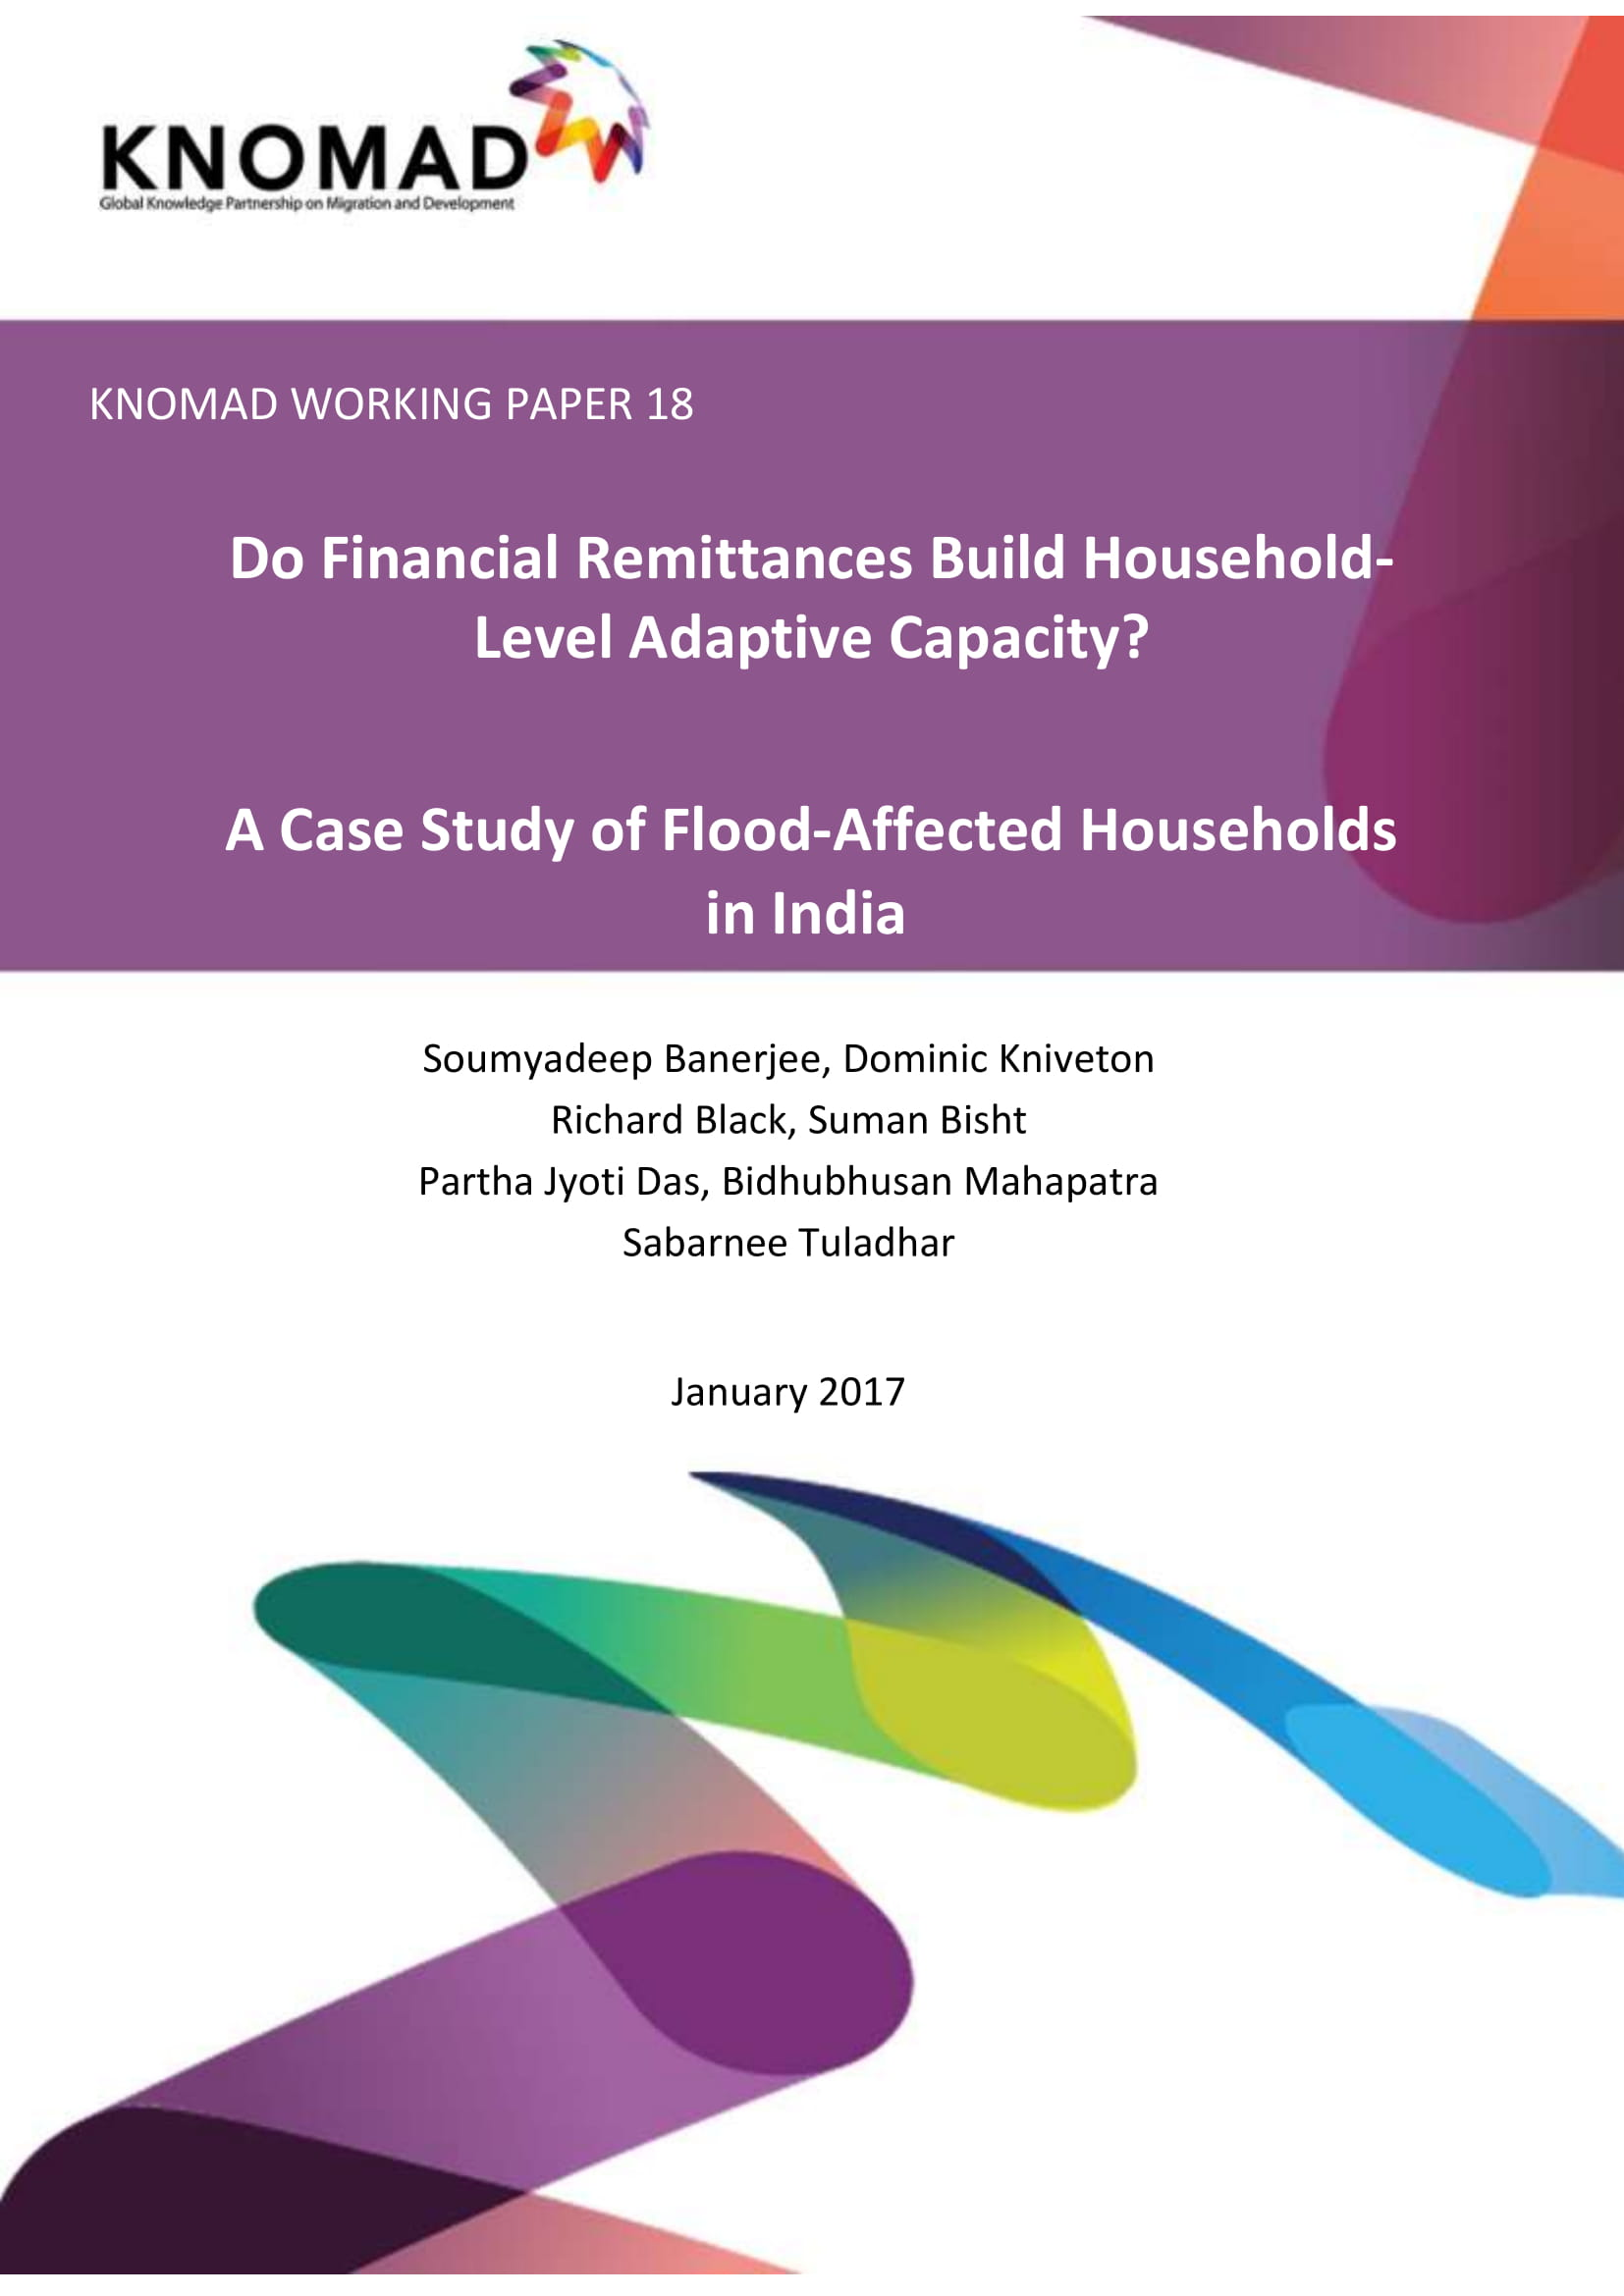 Do Financial Remittances Build Household-Level Adaptive Capacity? A Case Study Of Flood-Affected Households In India